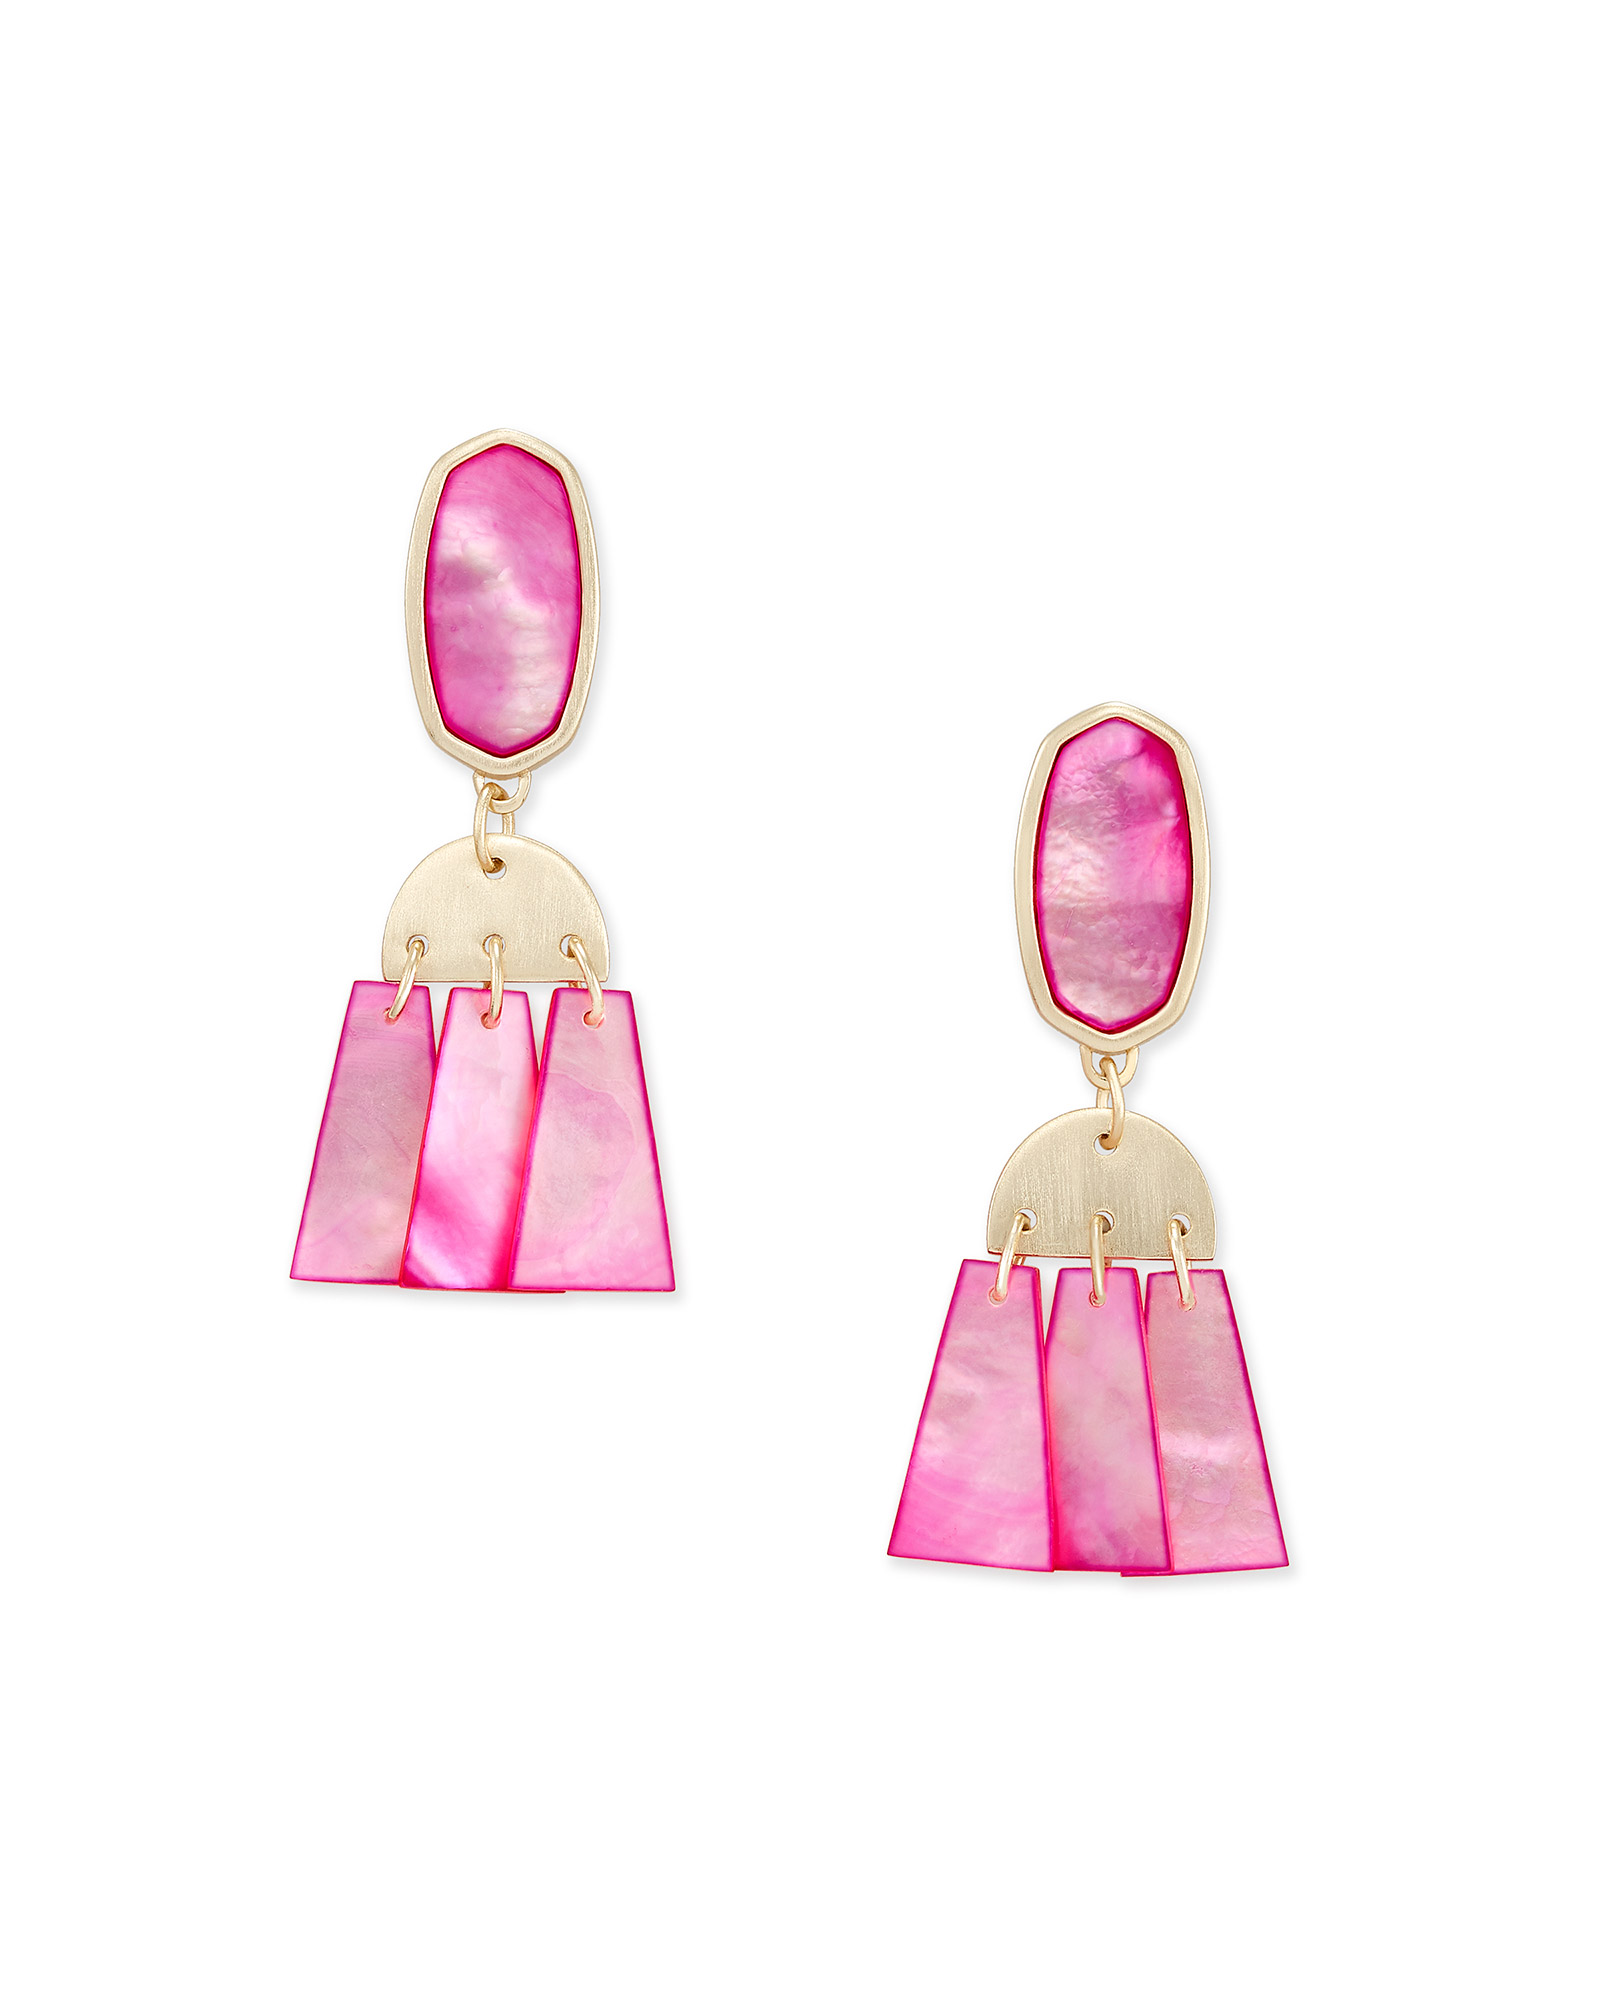 Noah Gold Statement Earrings in Magenta Mother-of-Pearl